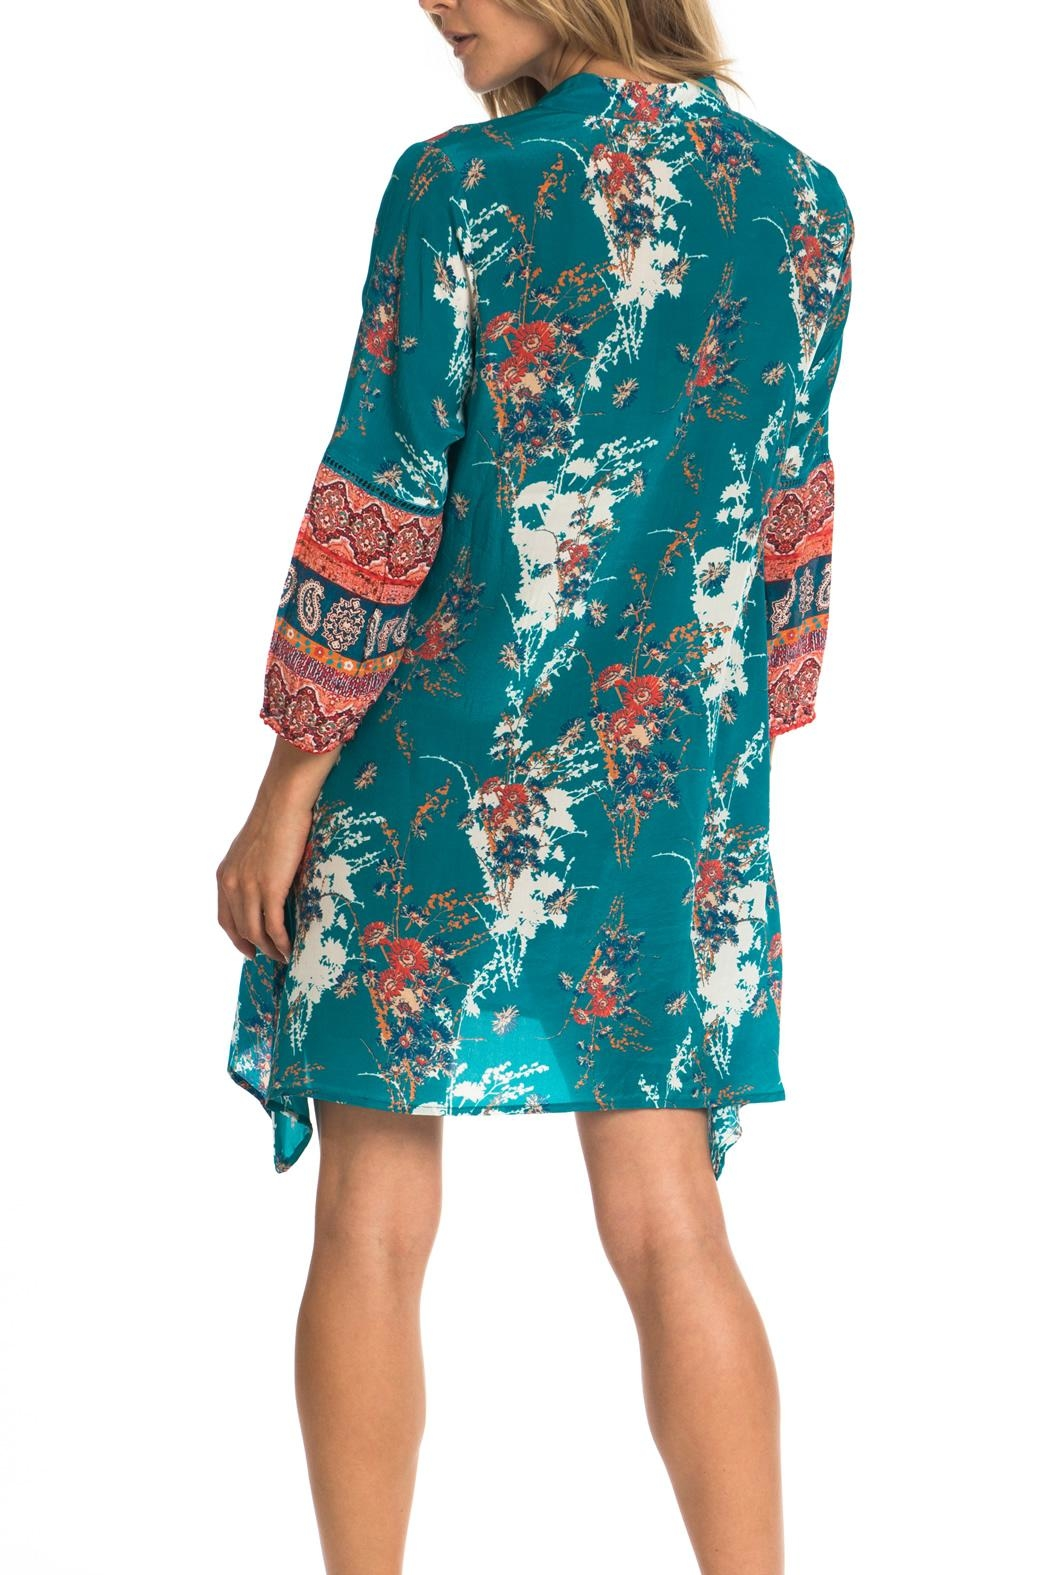 Tolani Tris Jade Tunic Dress - Front Full Image